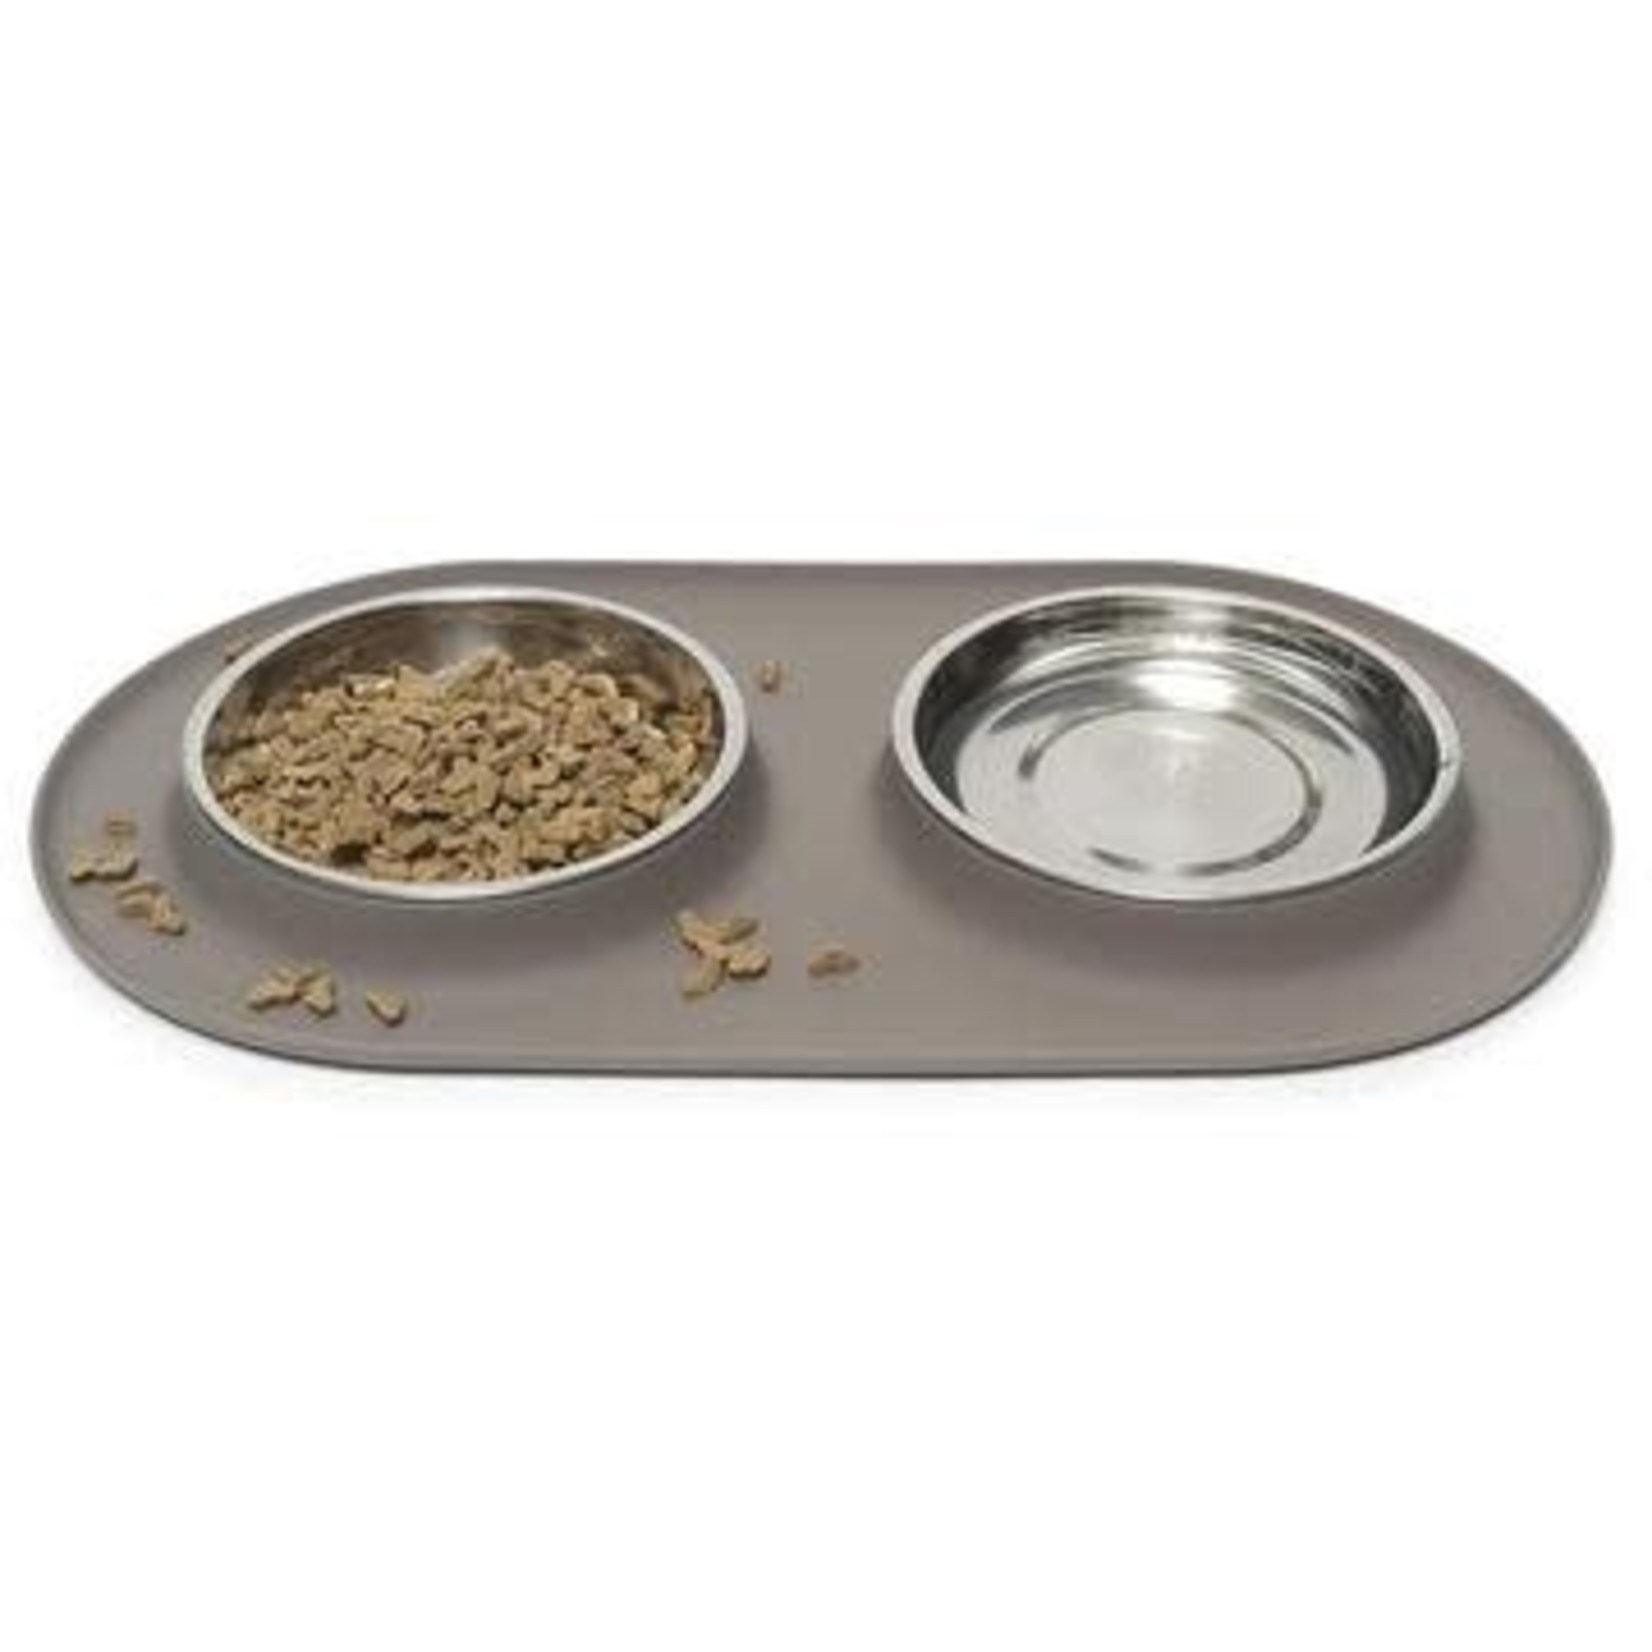 Messy Mutts Messy Mutts Cat Double Silicone Feeder Grey